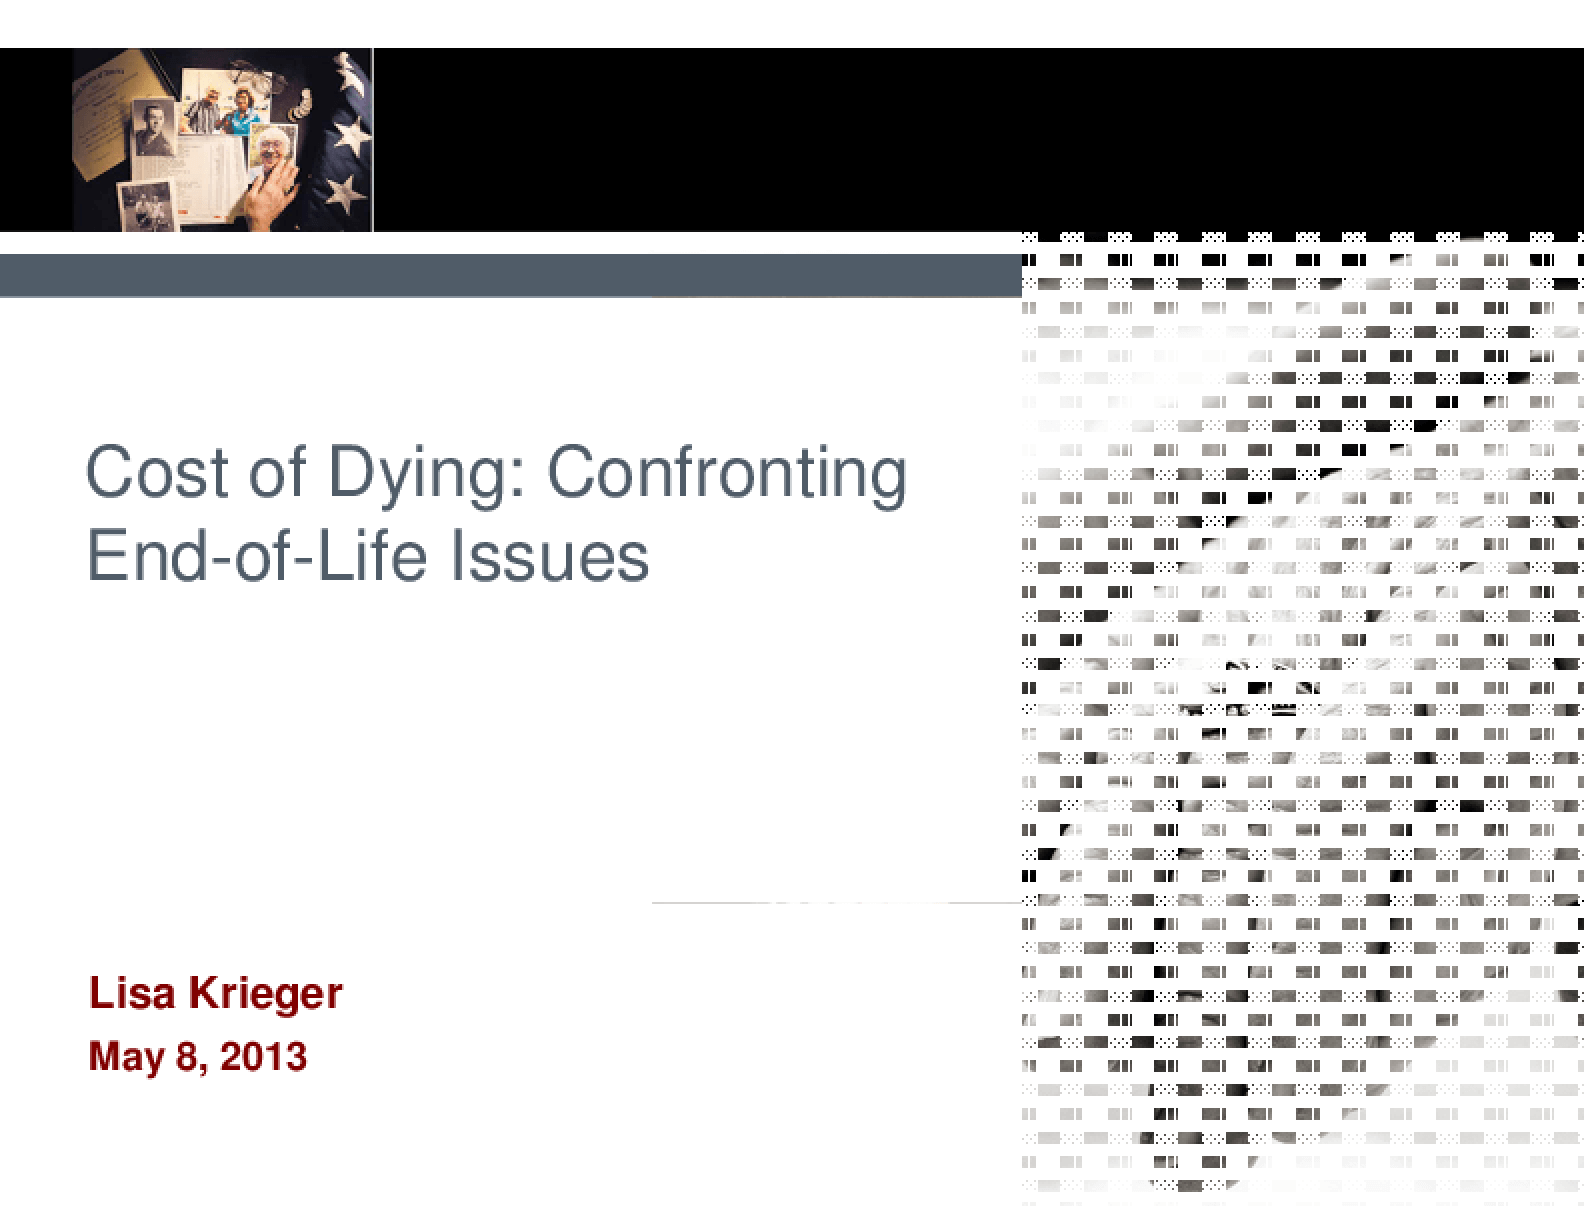 Cost of Dying: Confronting End-of-Life Care Issues